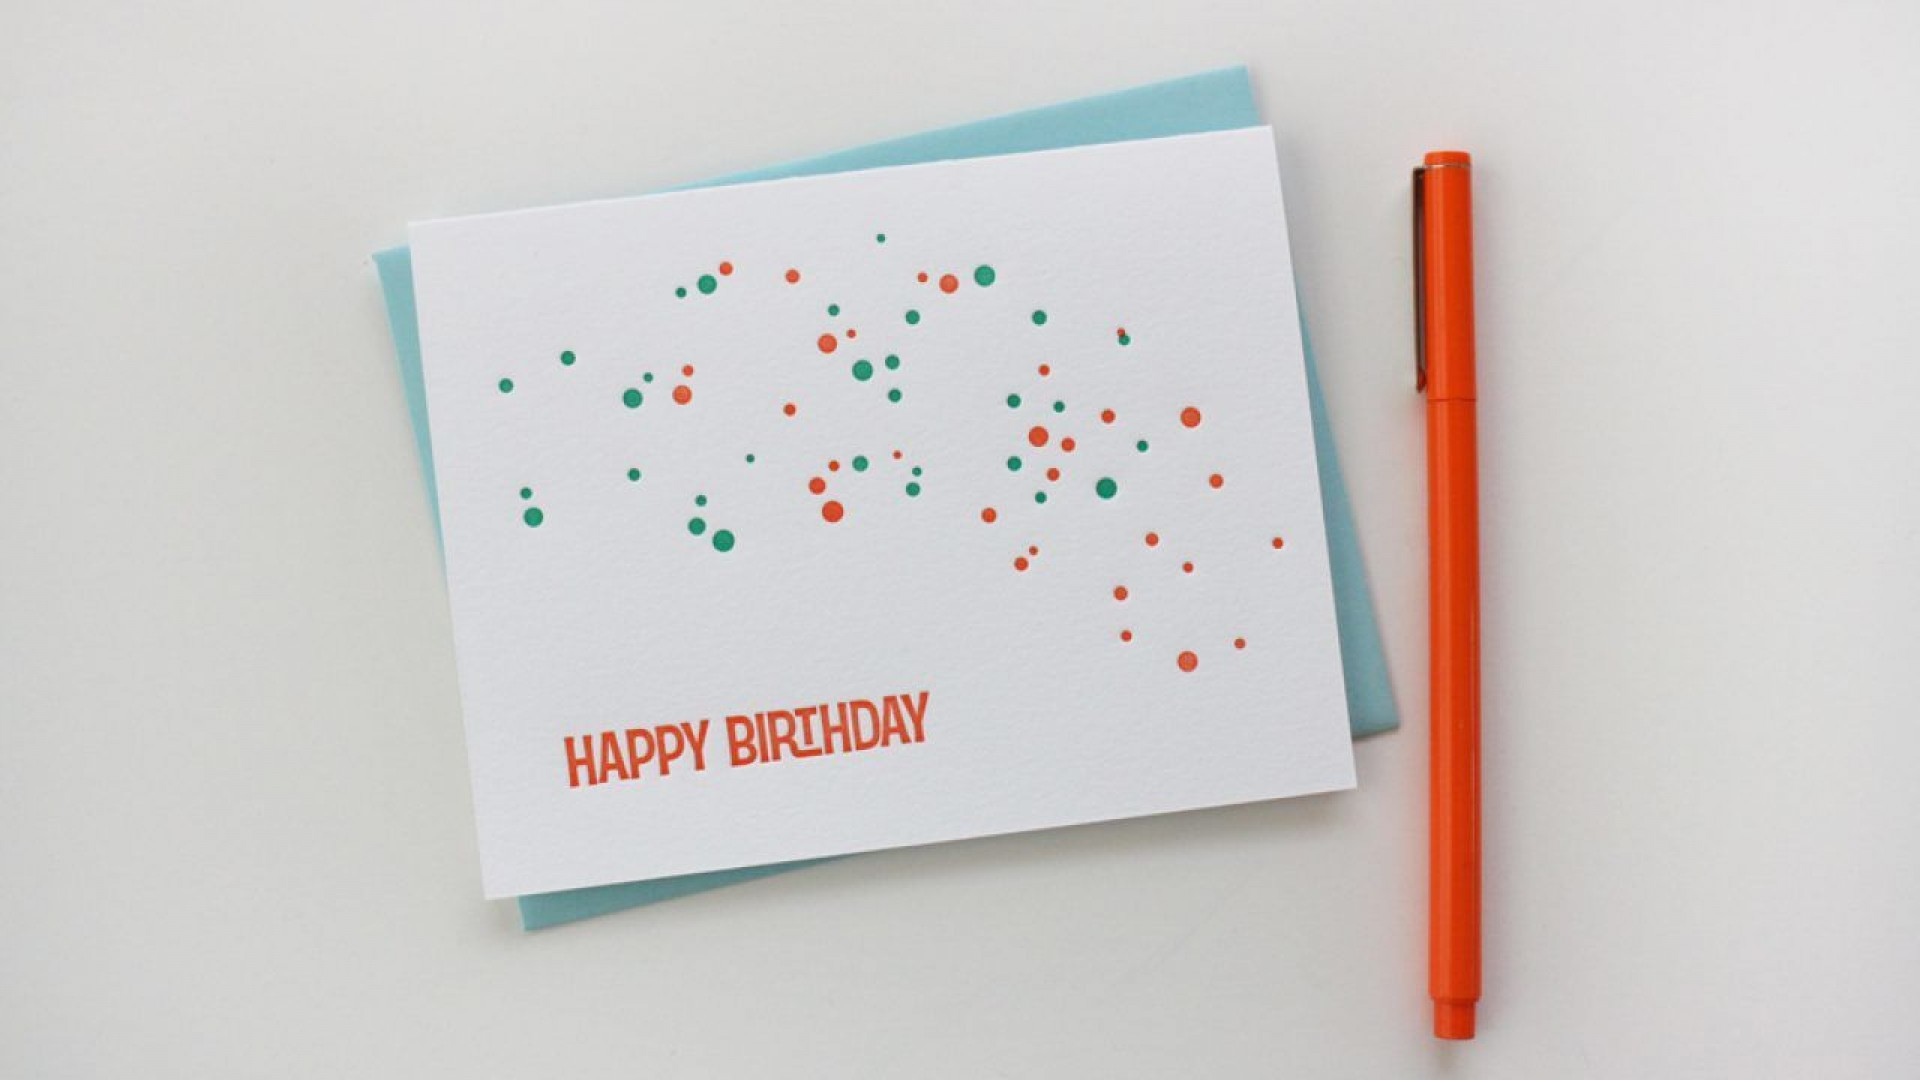 008 Awesome Free Printable Birthday Card Template For Mac Image 1920